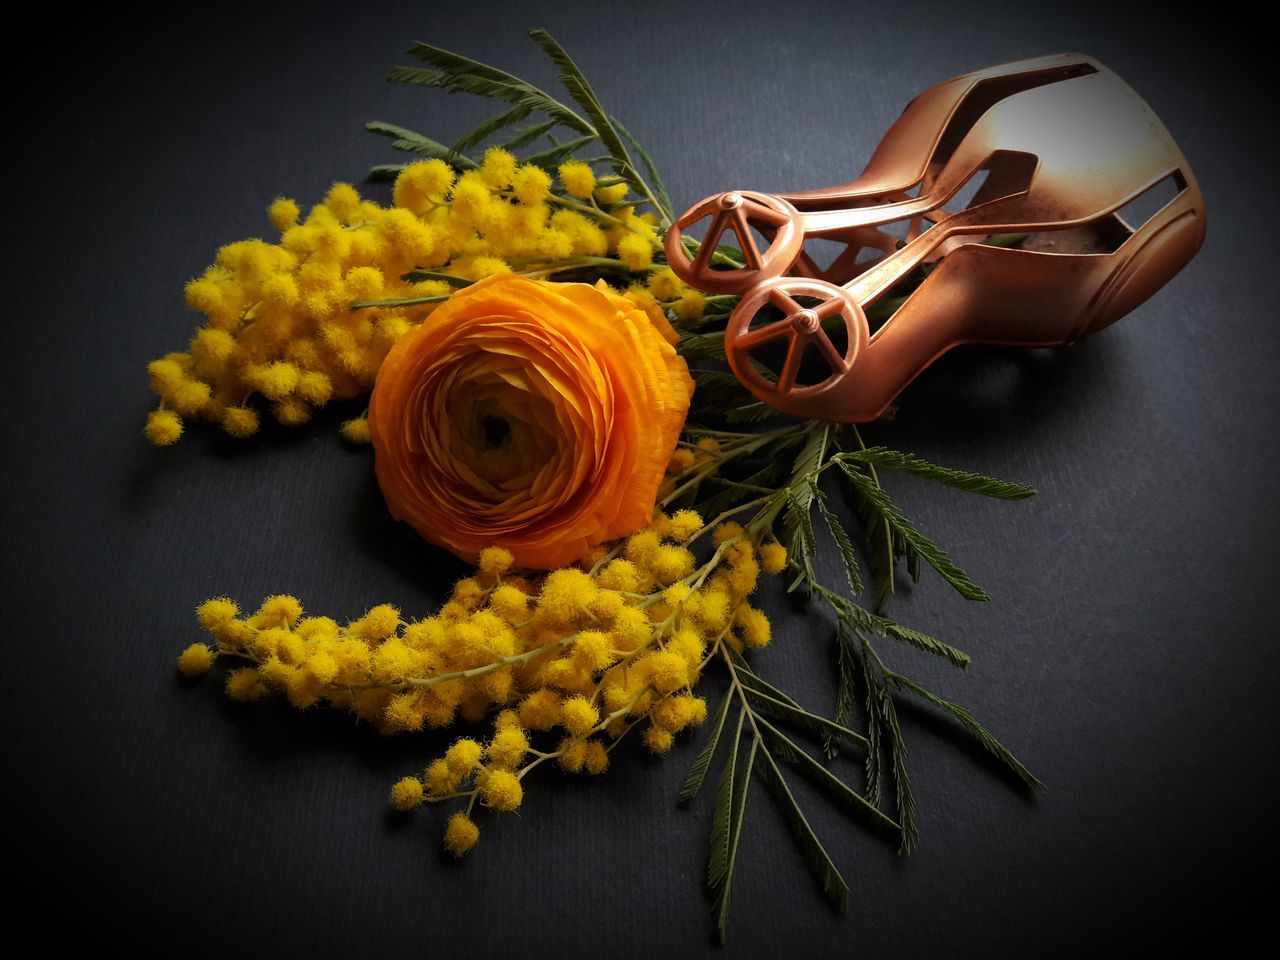 flower, no people, table, yellow, indoors, close-up, freshness, flower head, day